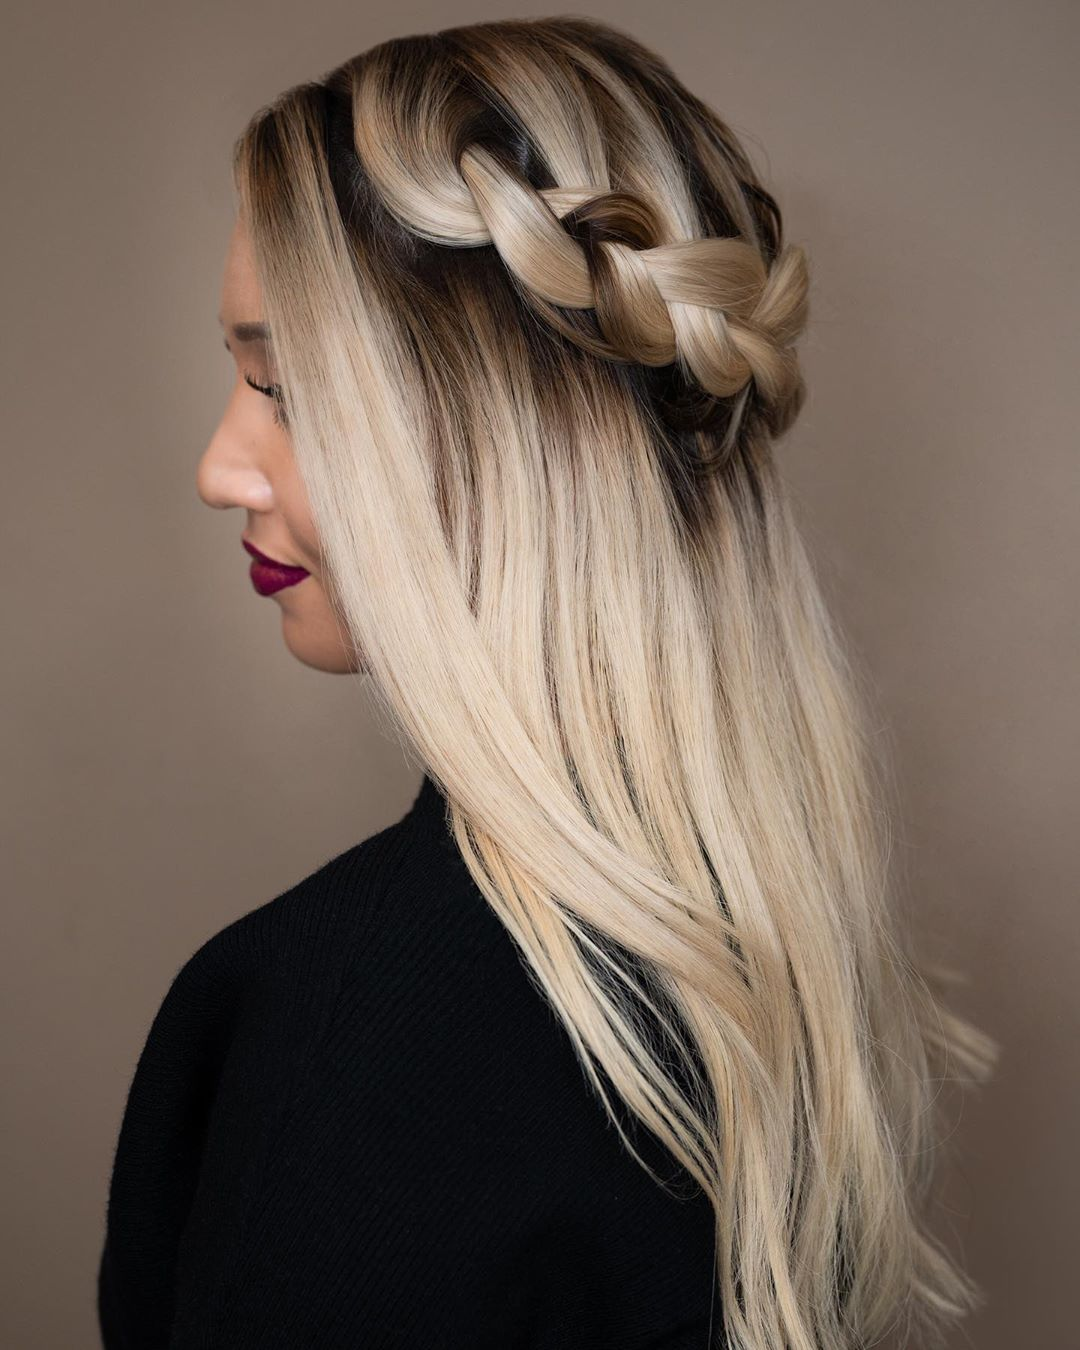 Half Updo with a Braided Halo